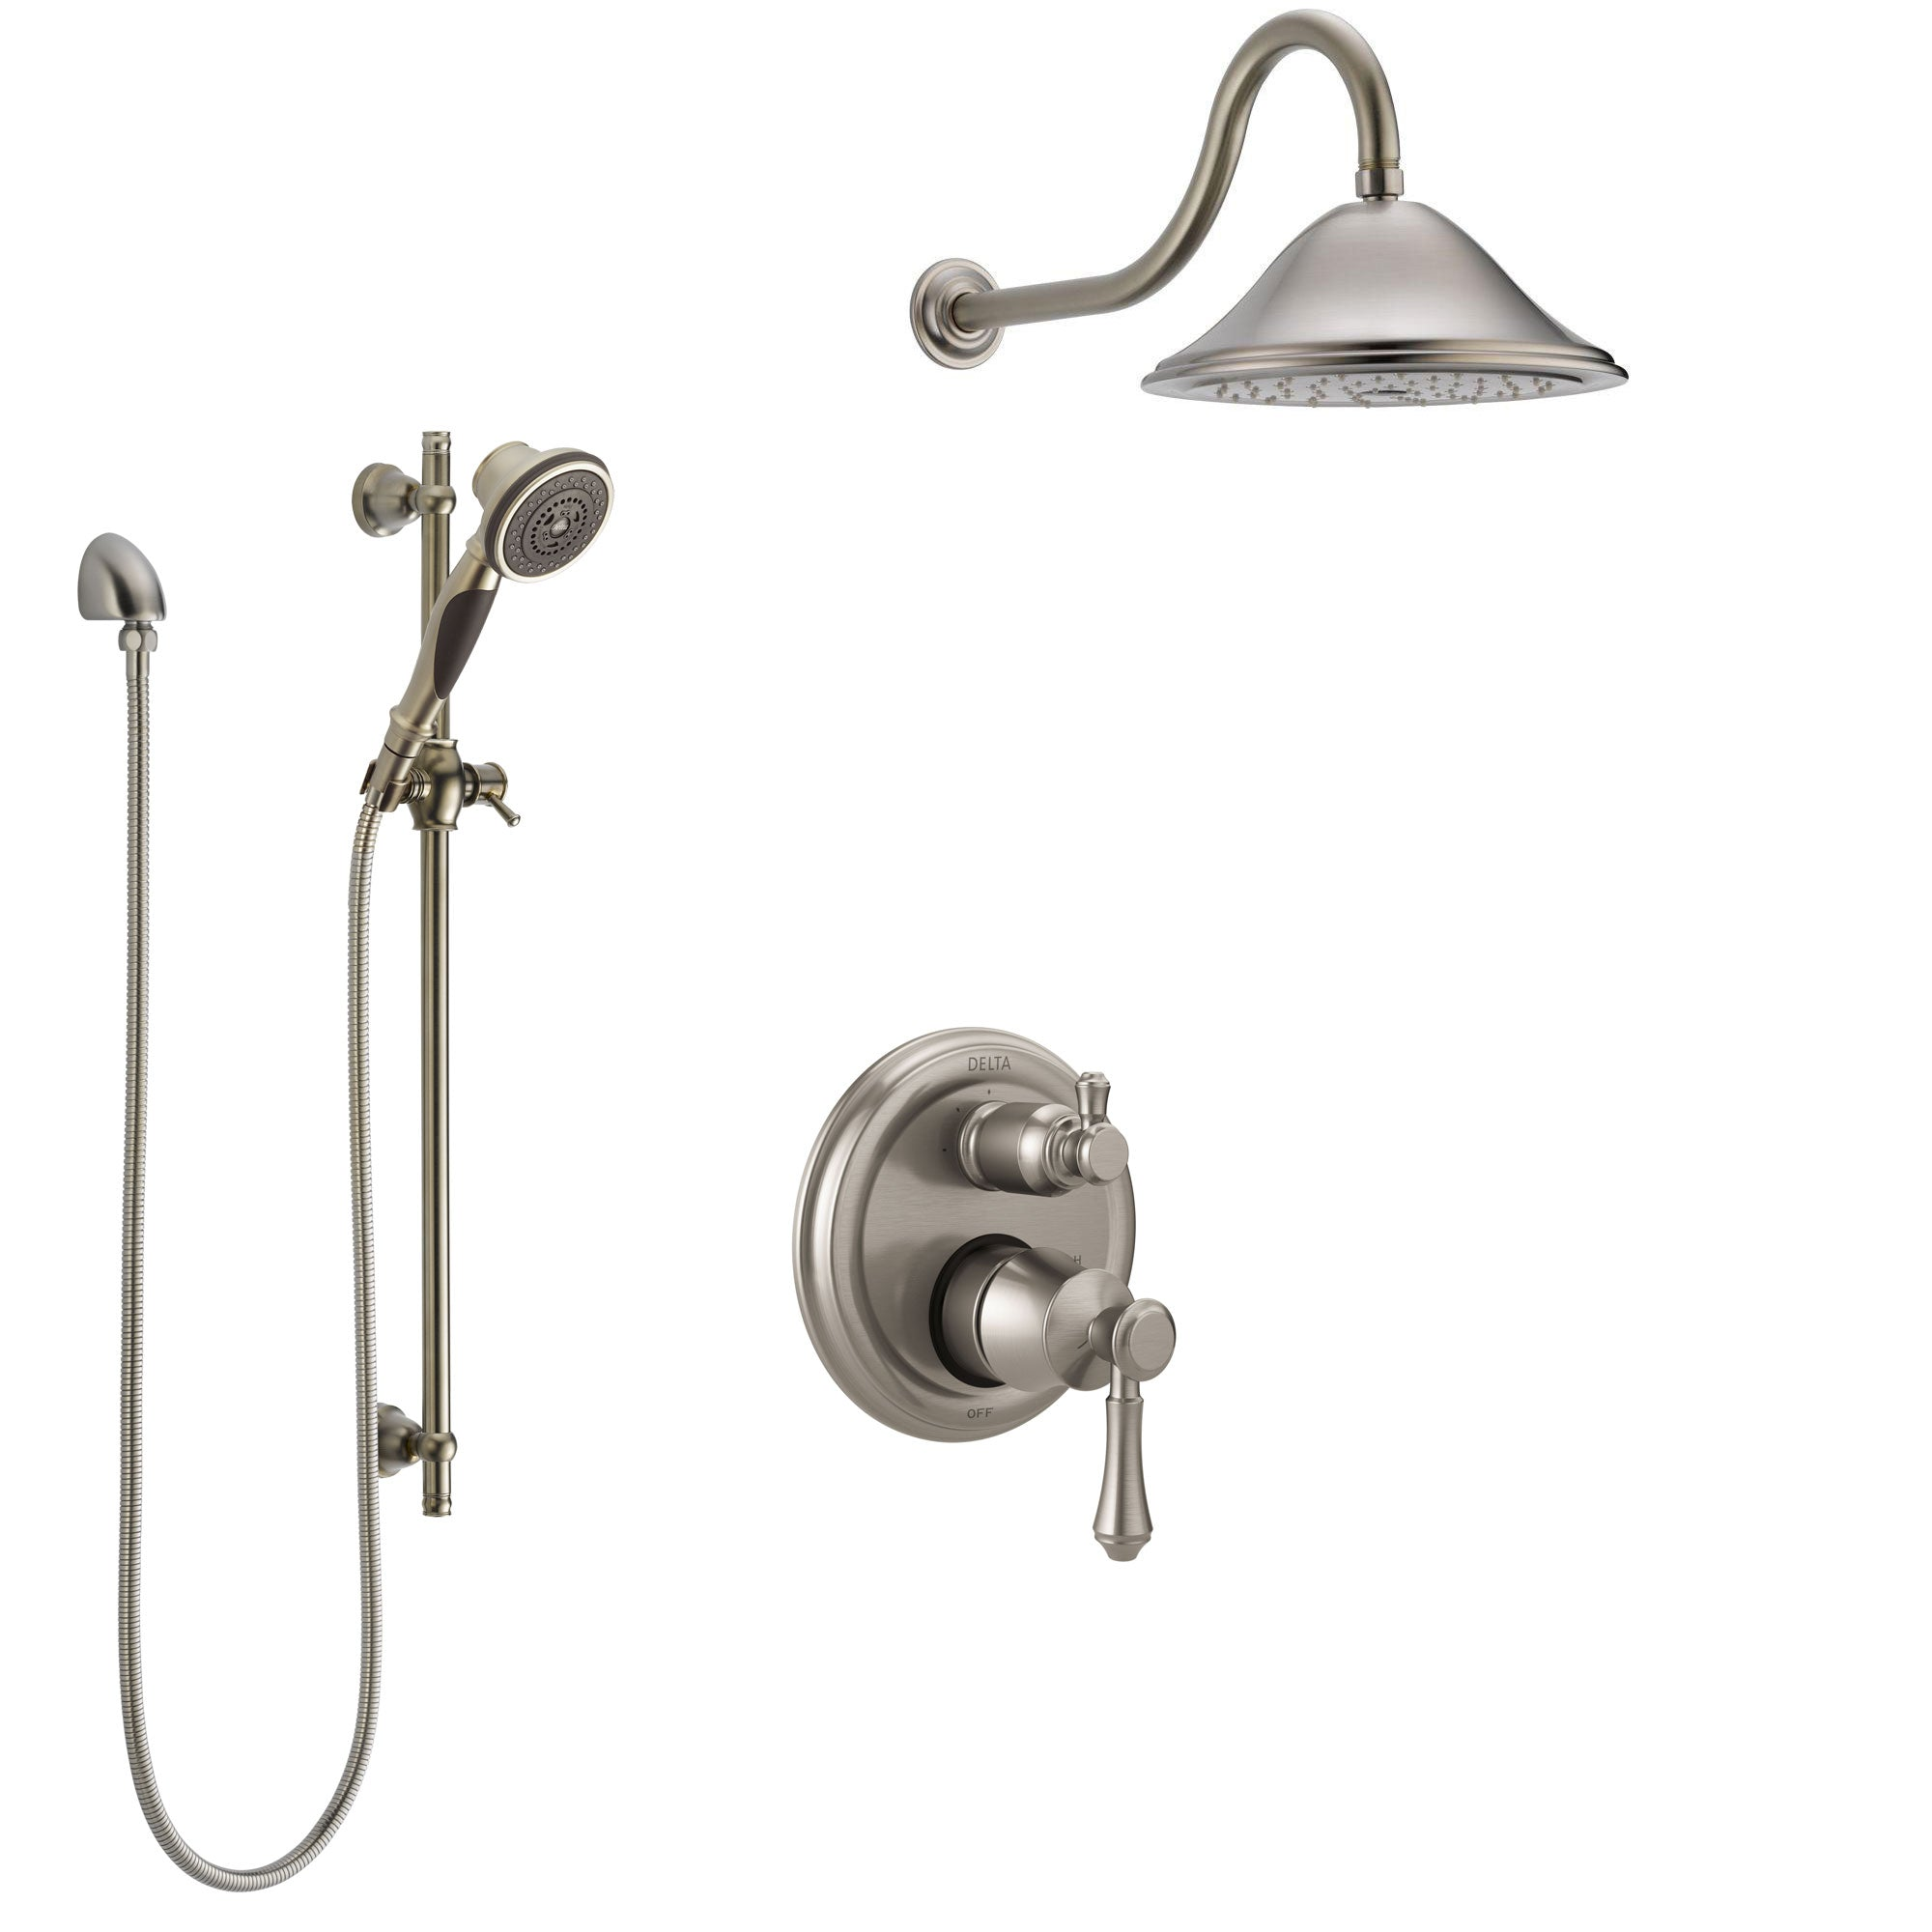 Delta Cassidy Stainless Steel Finish Shower System with Control Handle, Integrated Diverter, Showerhead, and Hand Shower with Slidebar SS24897SS2